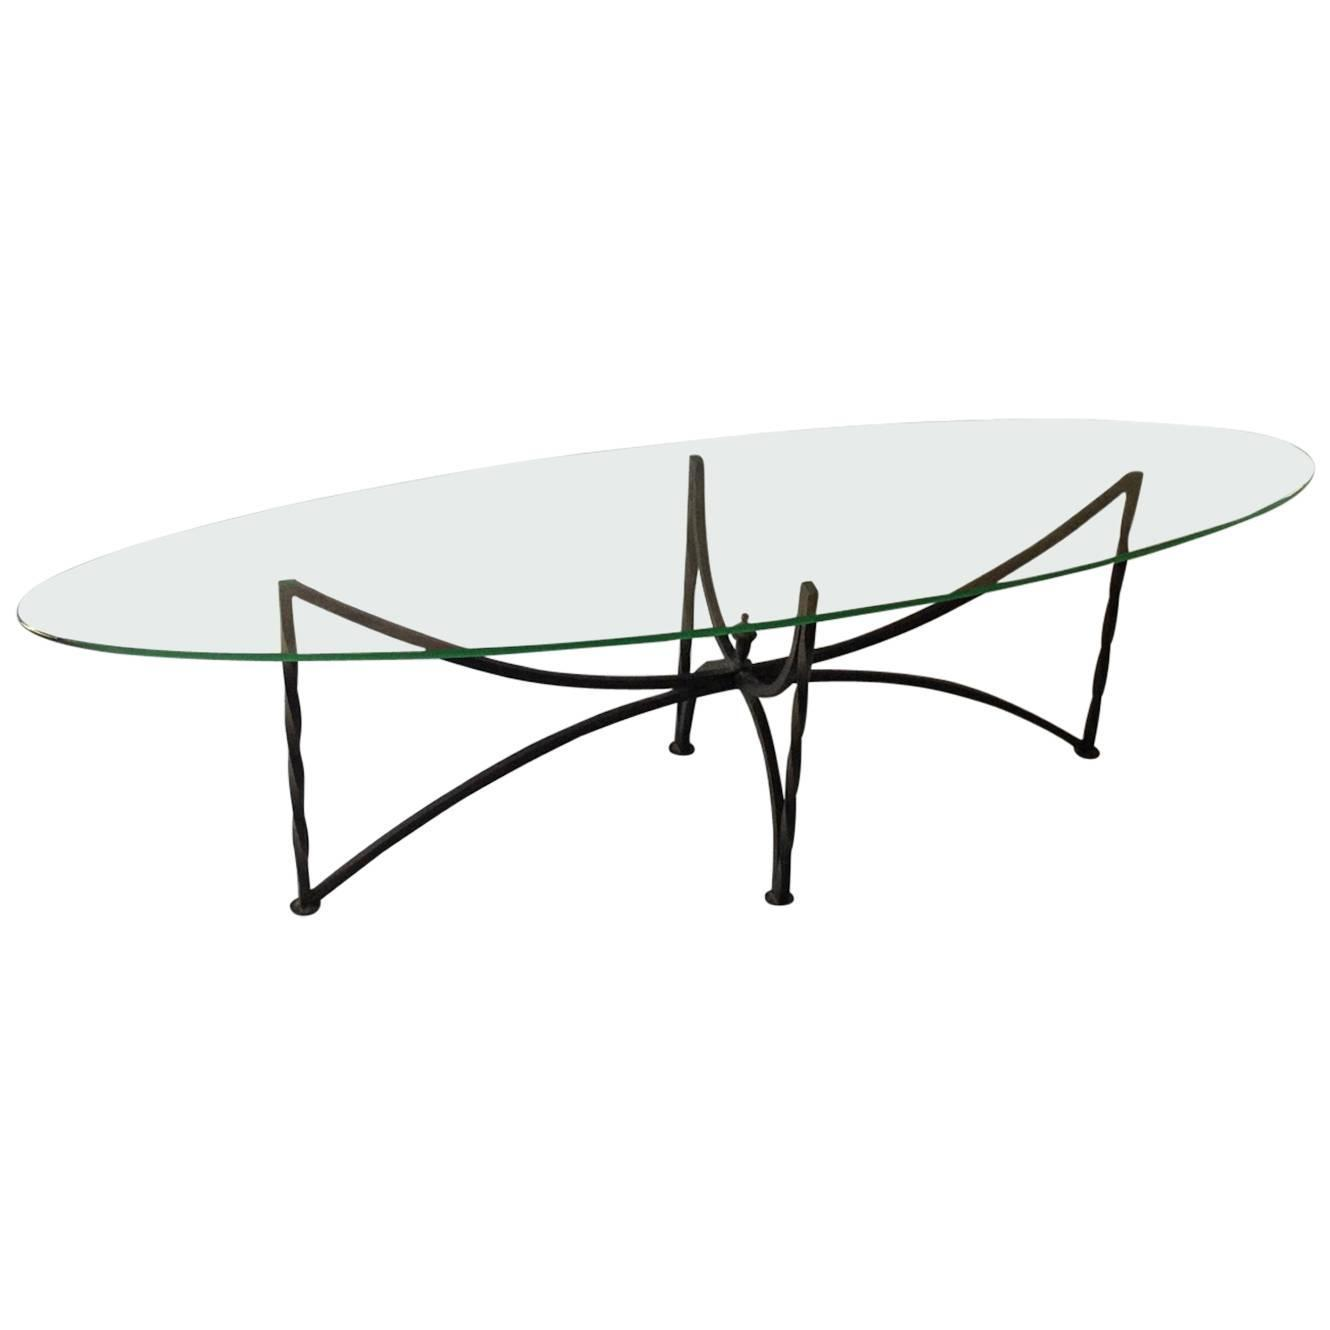 Oval Glass Top Coffee Table With Wrought Iron Base At 1stdibs: glass coffee table base